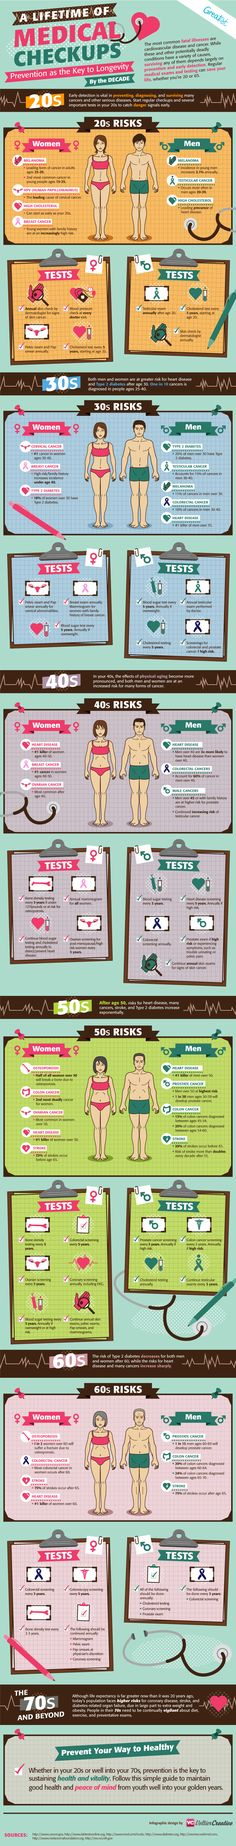 A Lifetime of Medical Checkups #infographic #Health #MedicalCheckups